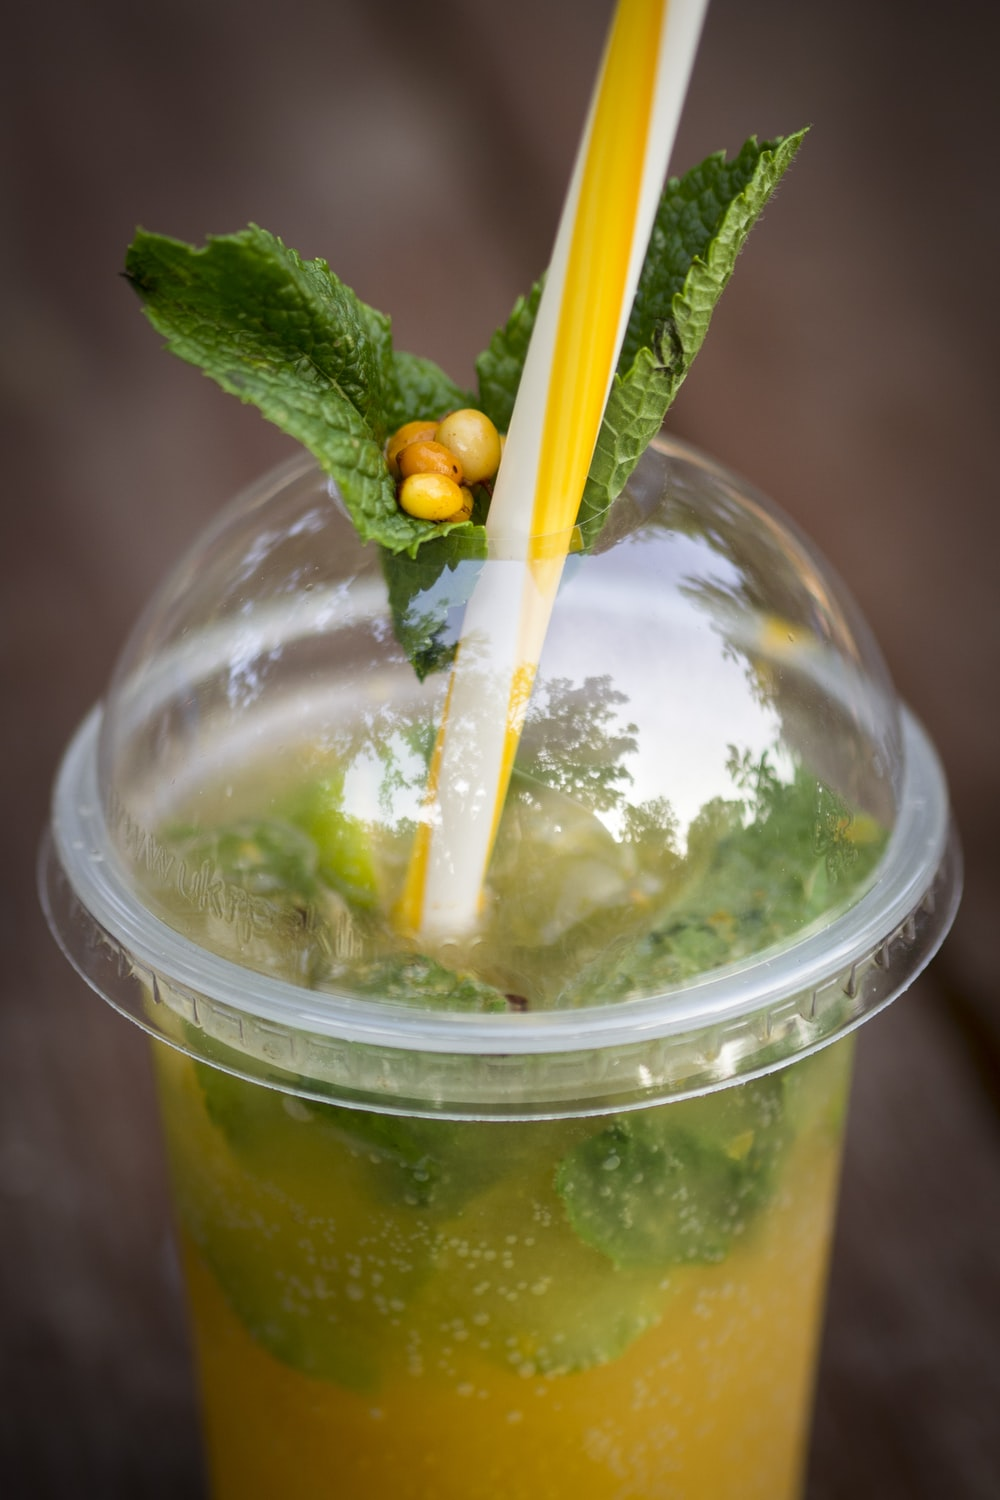 clear plastic cup with yellow liquid and green leaf